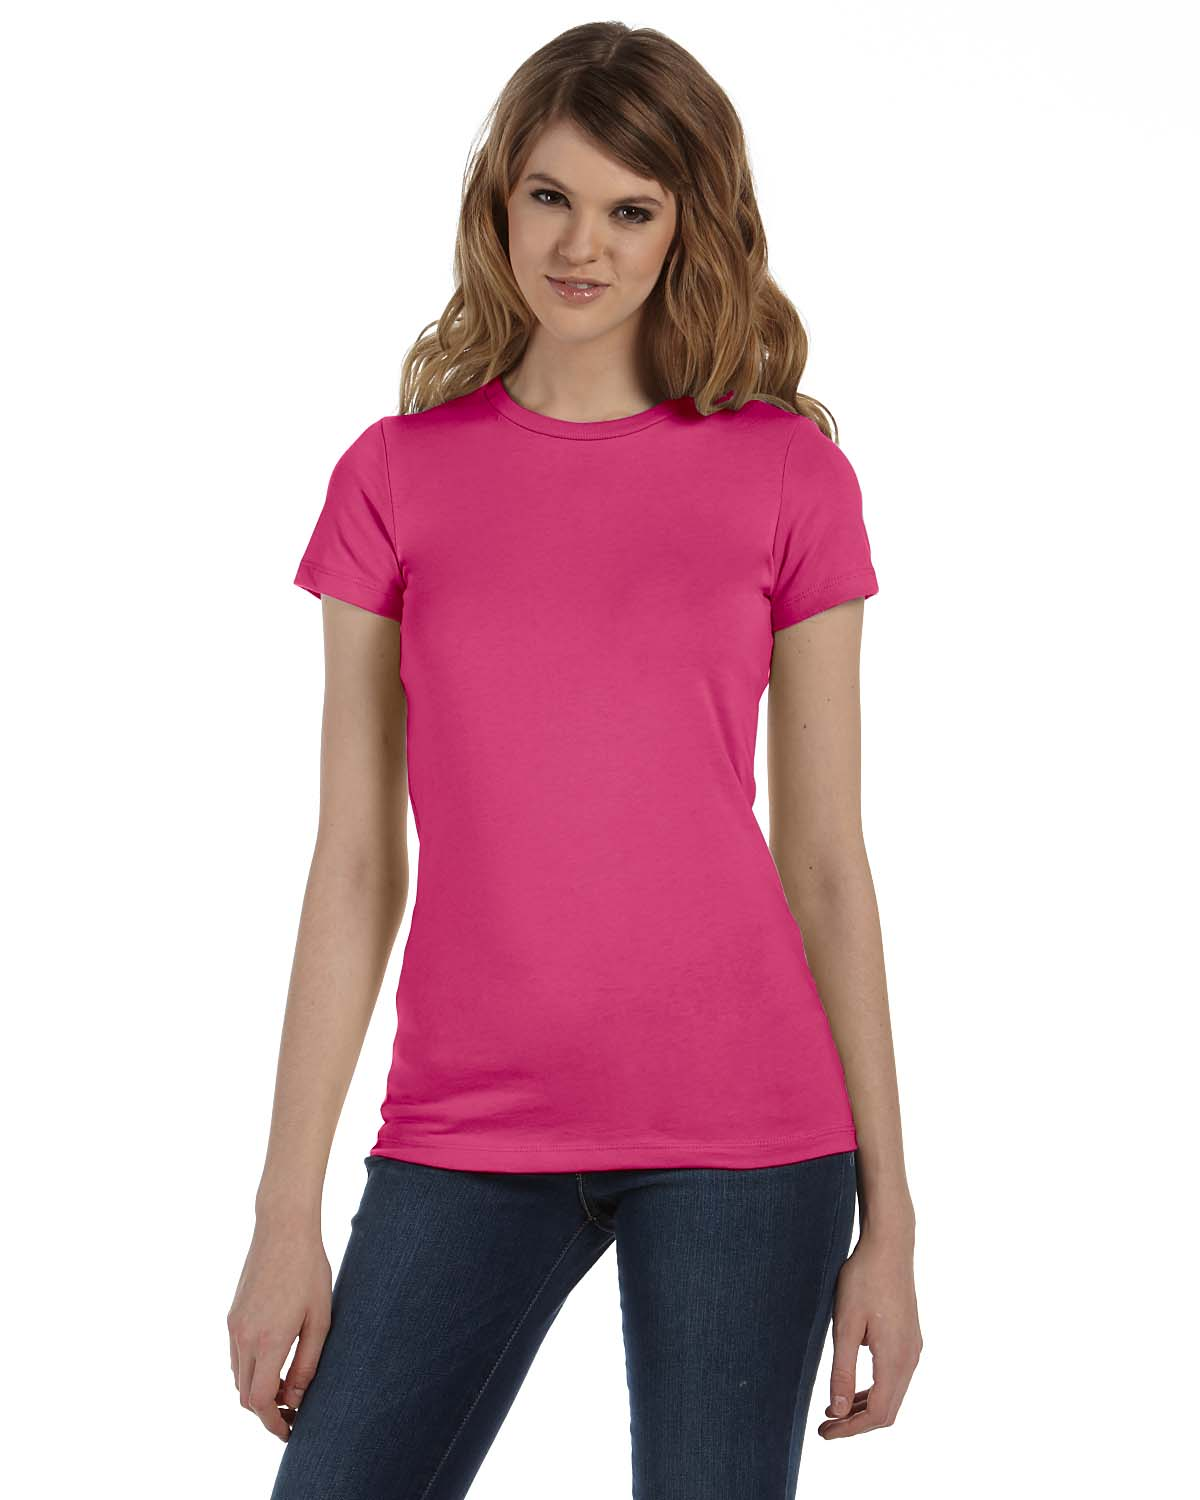 Bella Ladies Made In The USA Favorite T-Shirt